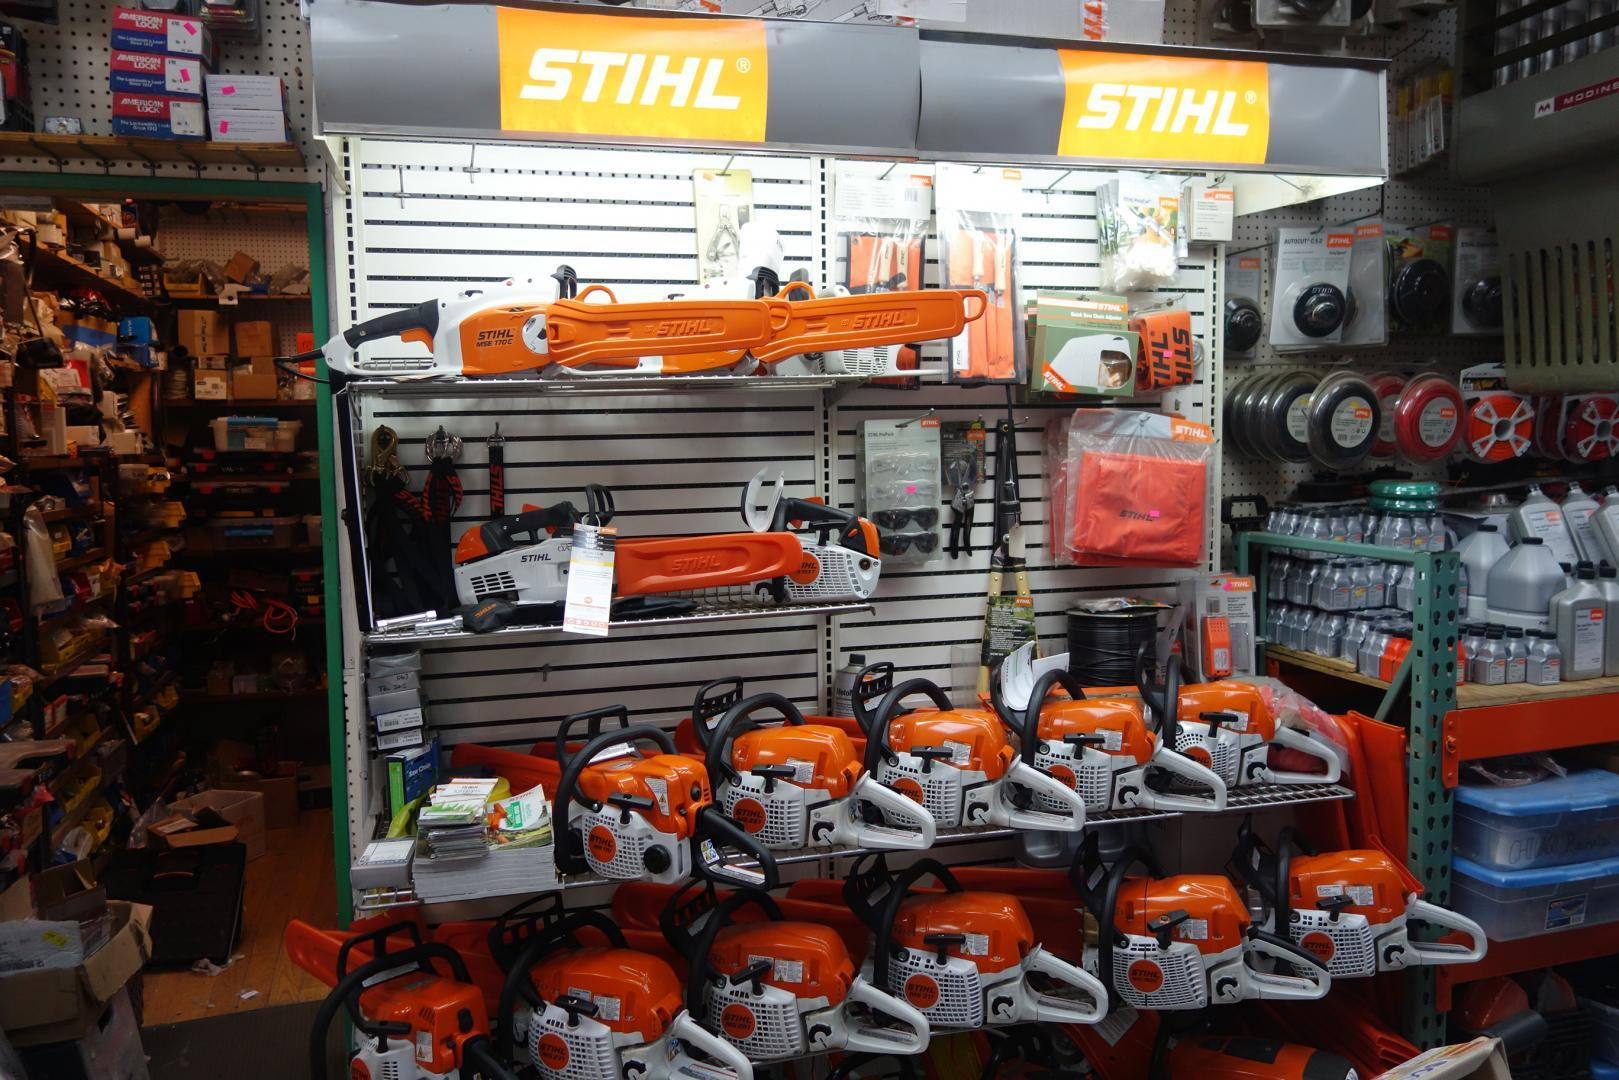 Tool rental tool sales construction equipment rental supply store purchase stihl power tools gallery contact us publicscrutiny Images